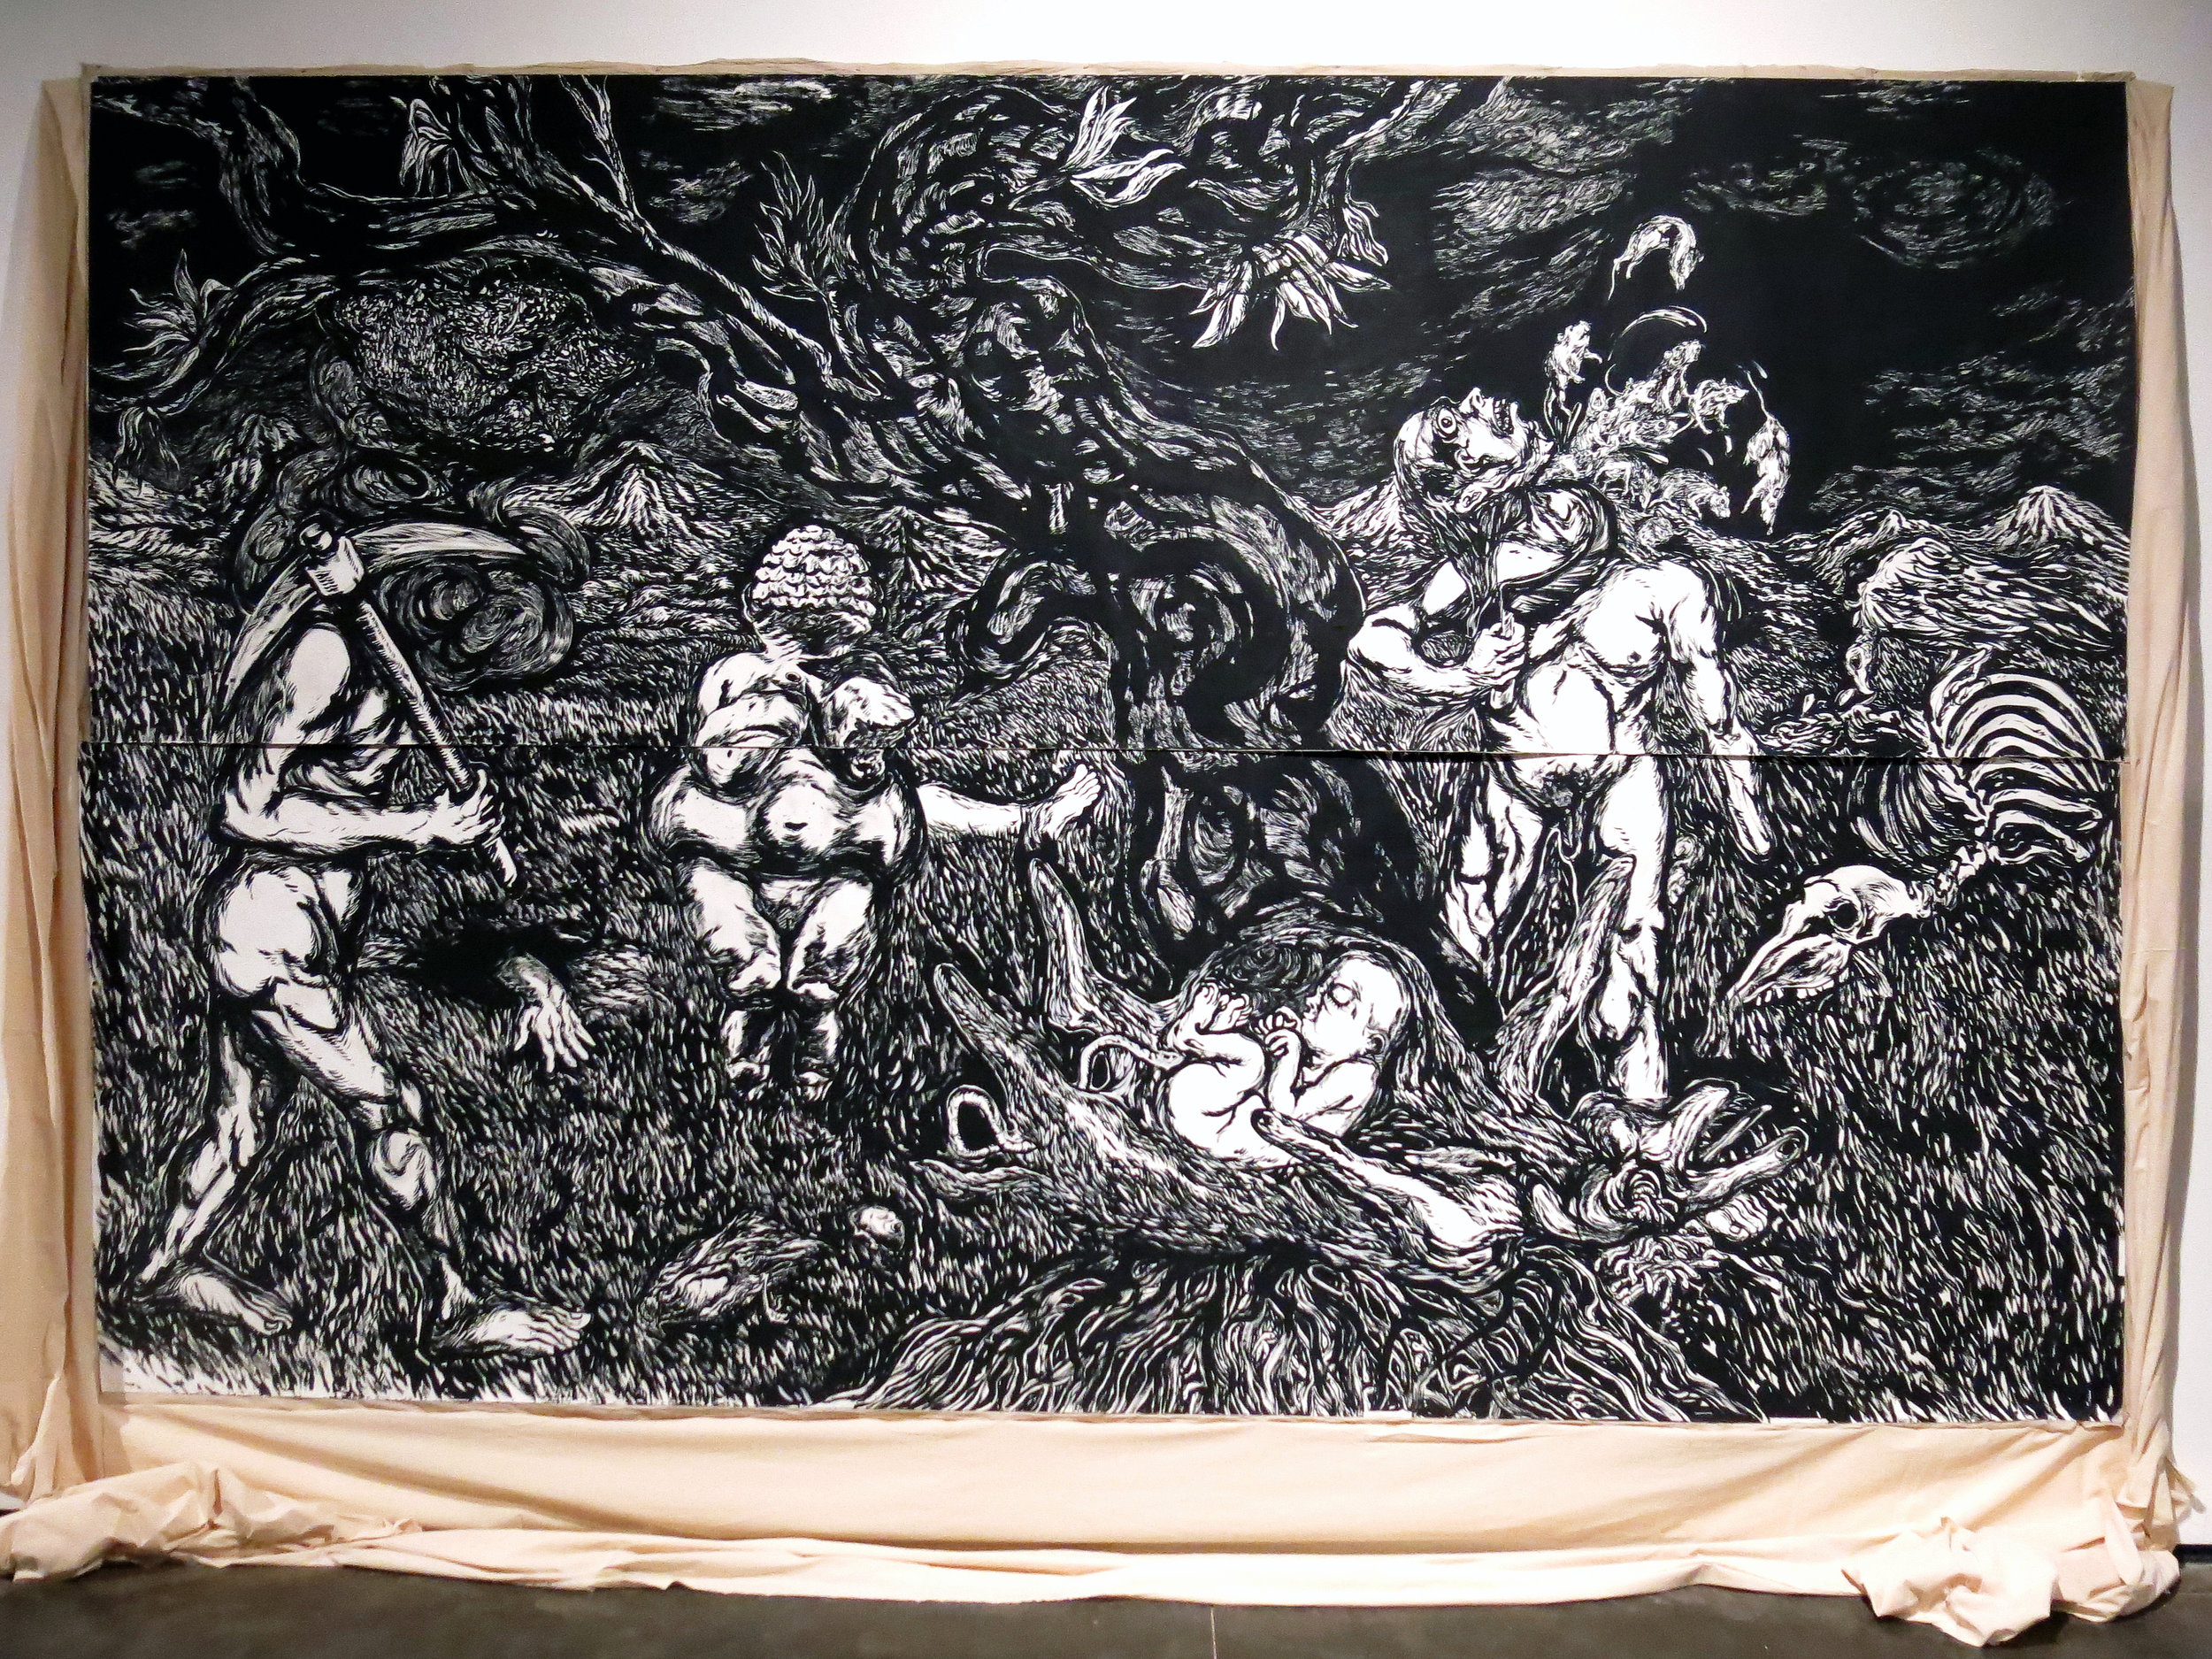 From  resistance land ; Black pigment and distemper on paper (350gsm, acid free, hot-press) pasted on cotton cloth; 10ft x 16ft (approximate, paper size); 2018. Image courtesy- Prakash Rao